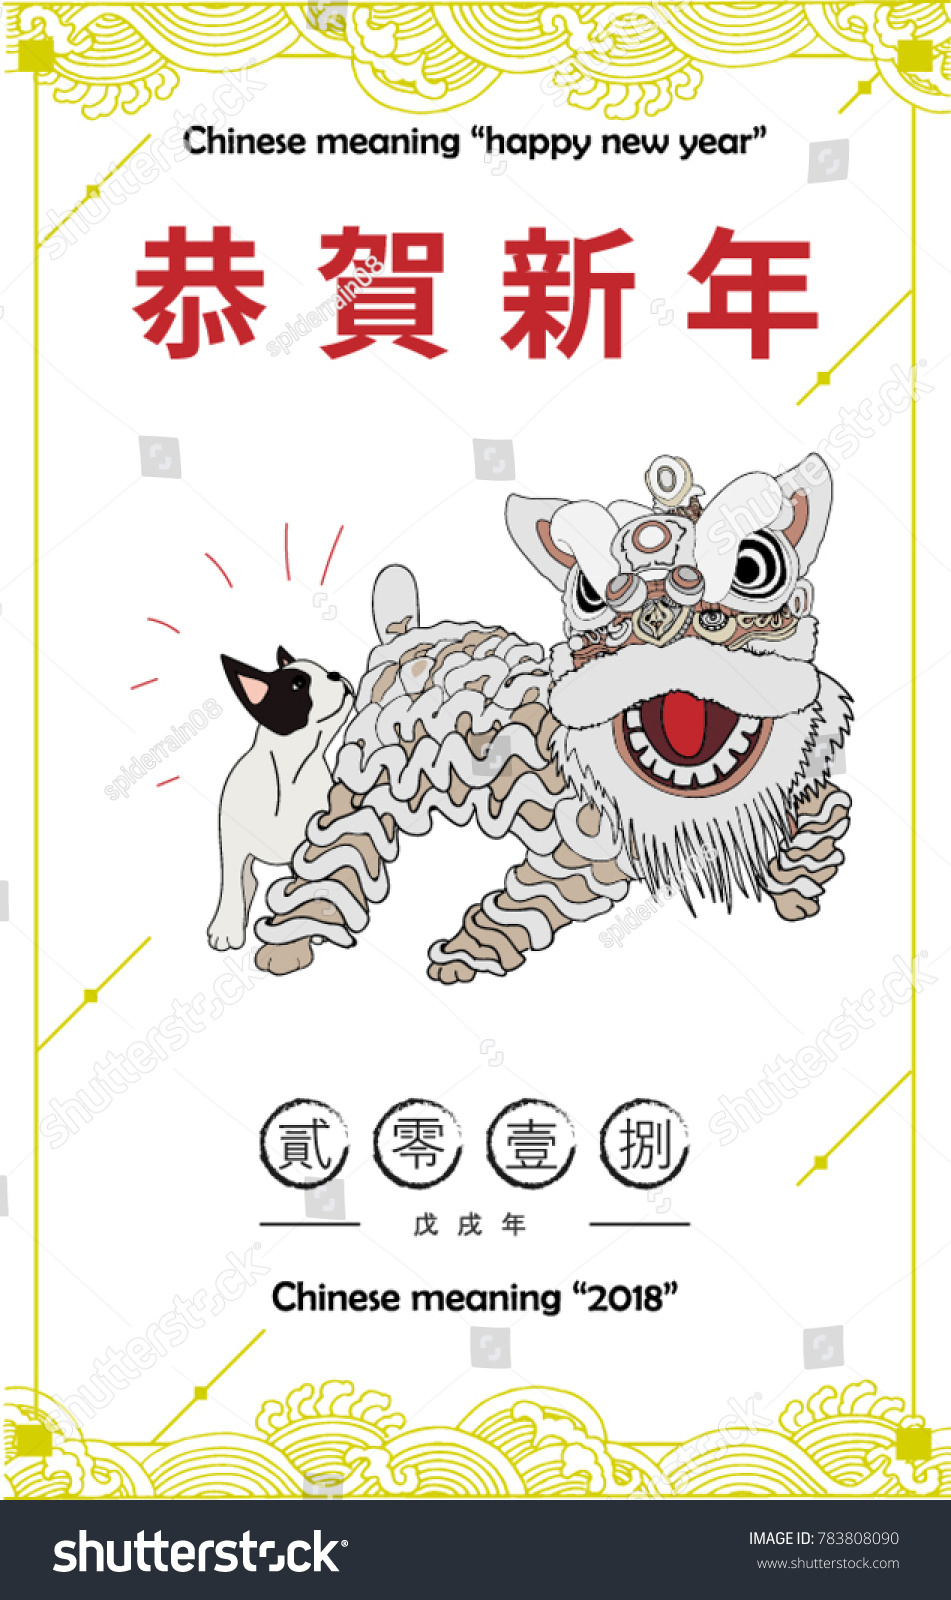 chinese lion dance chinese new year year of the dog happy - Chinese New Year Animals Meanings